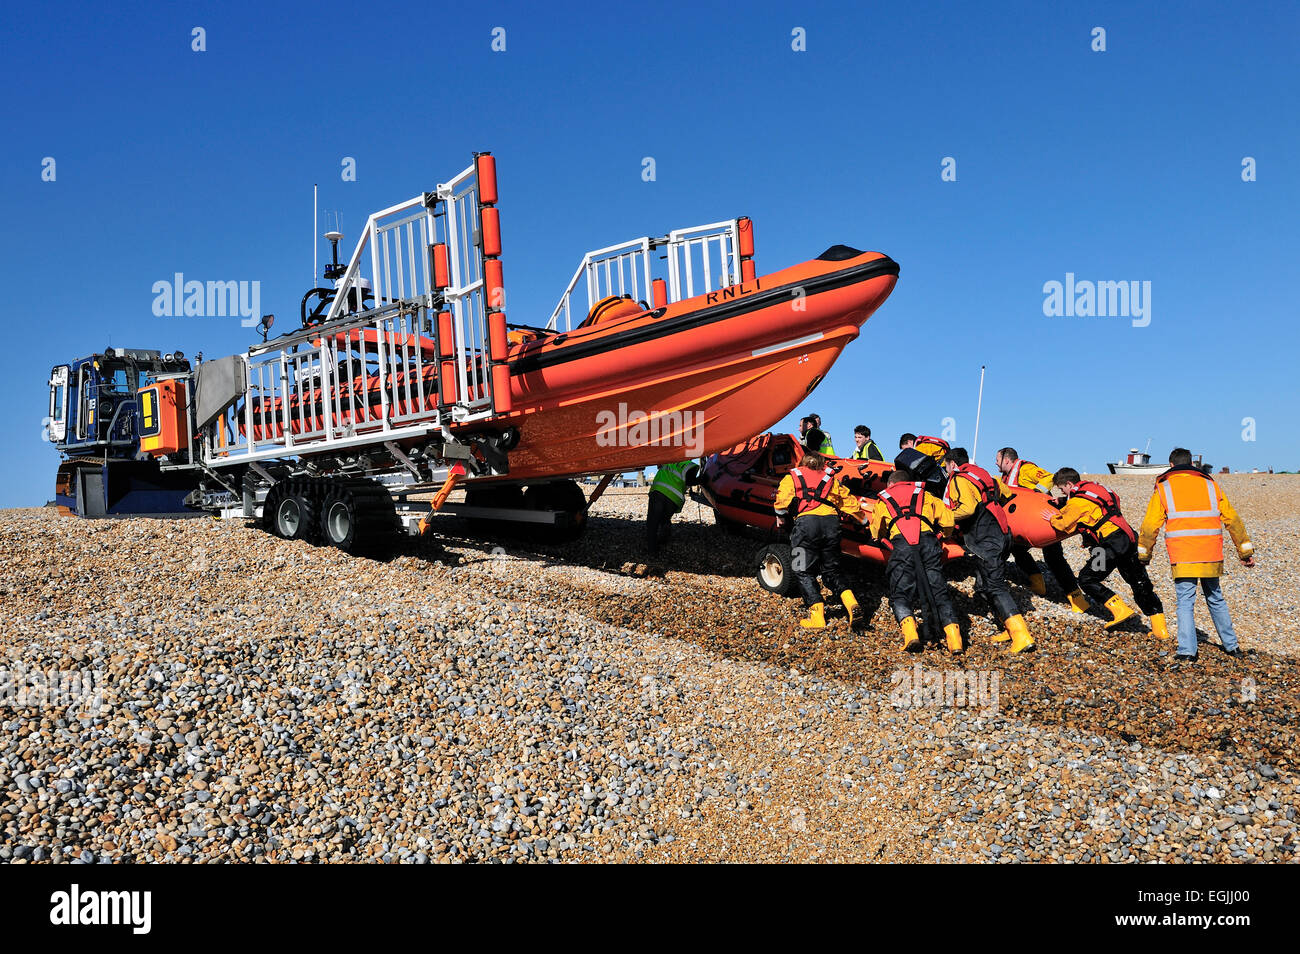 retrieving-lifeboat-from-the-sea-EGJJ00.